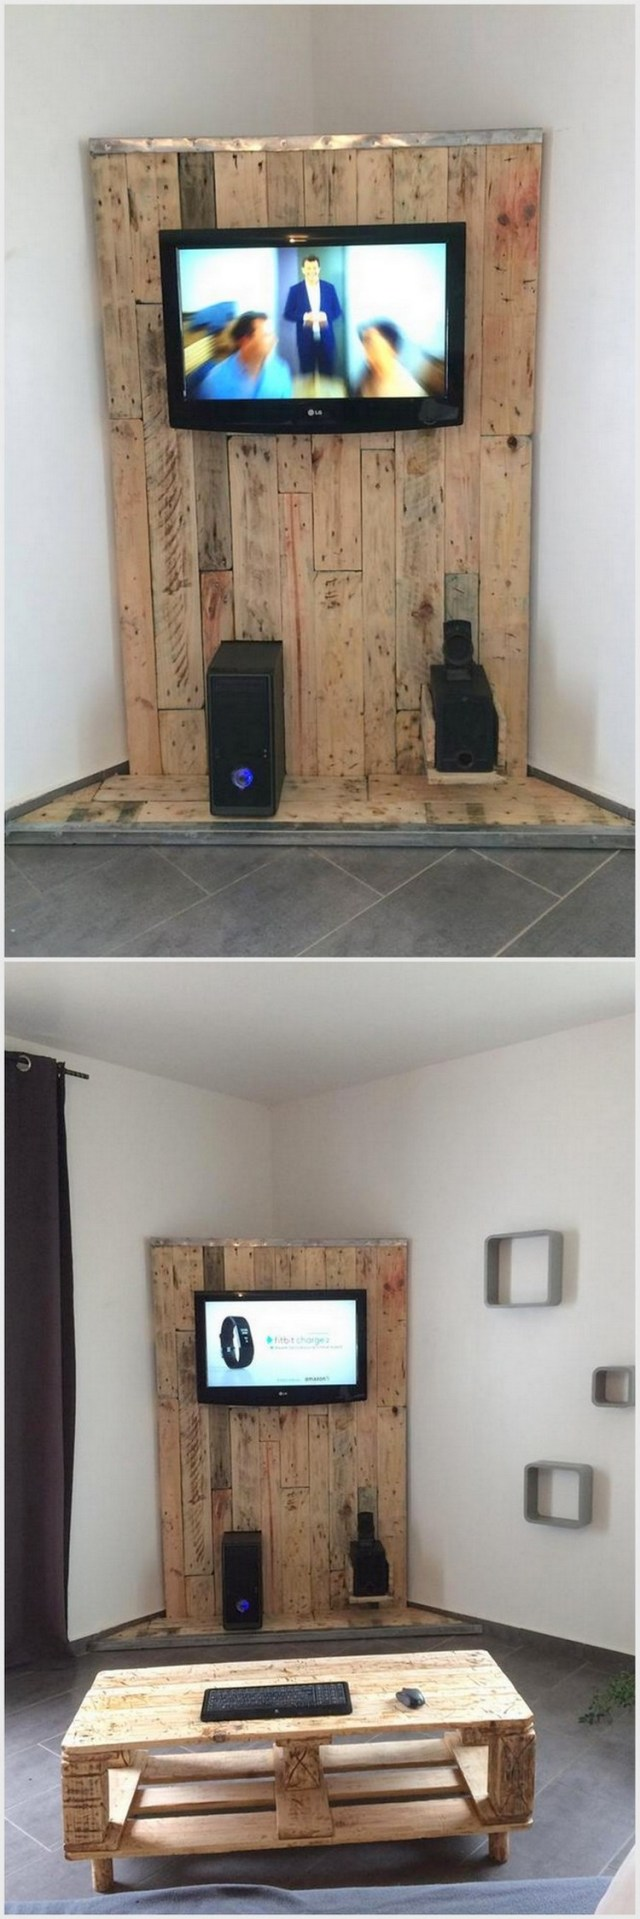 Pallet Wall LED Holder and Table